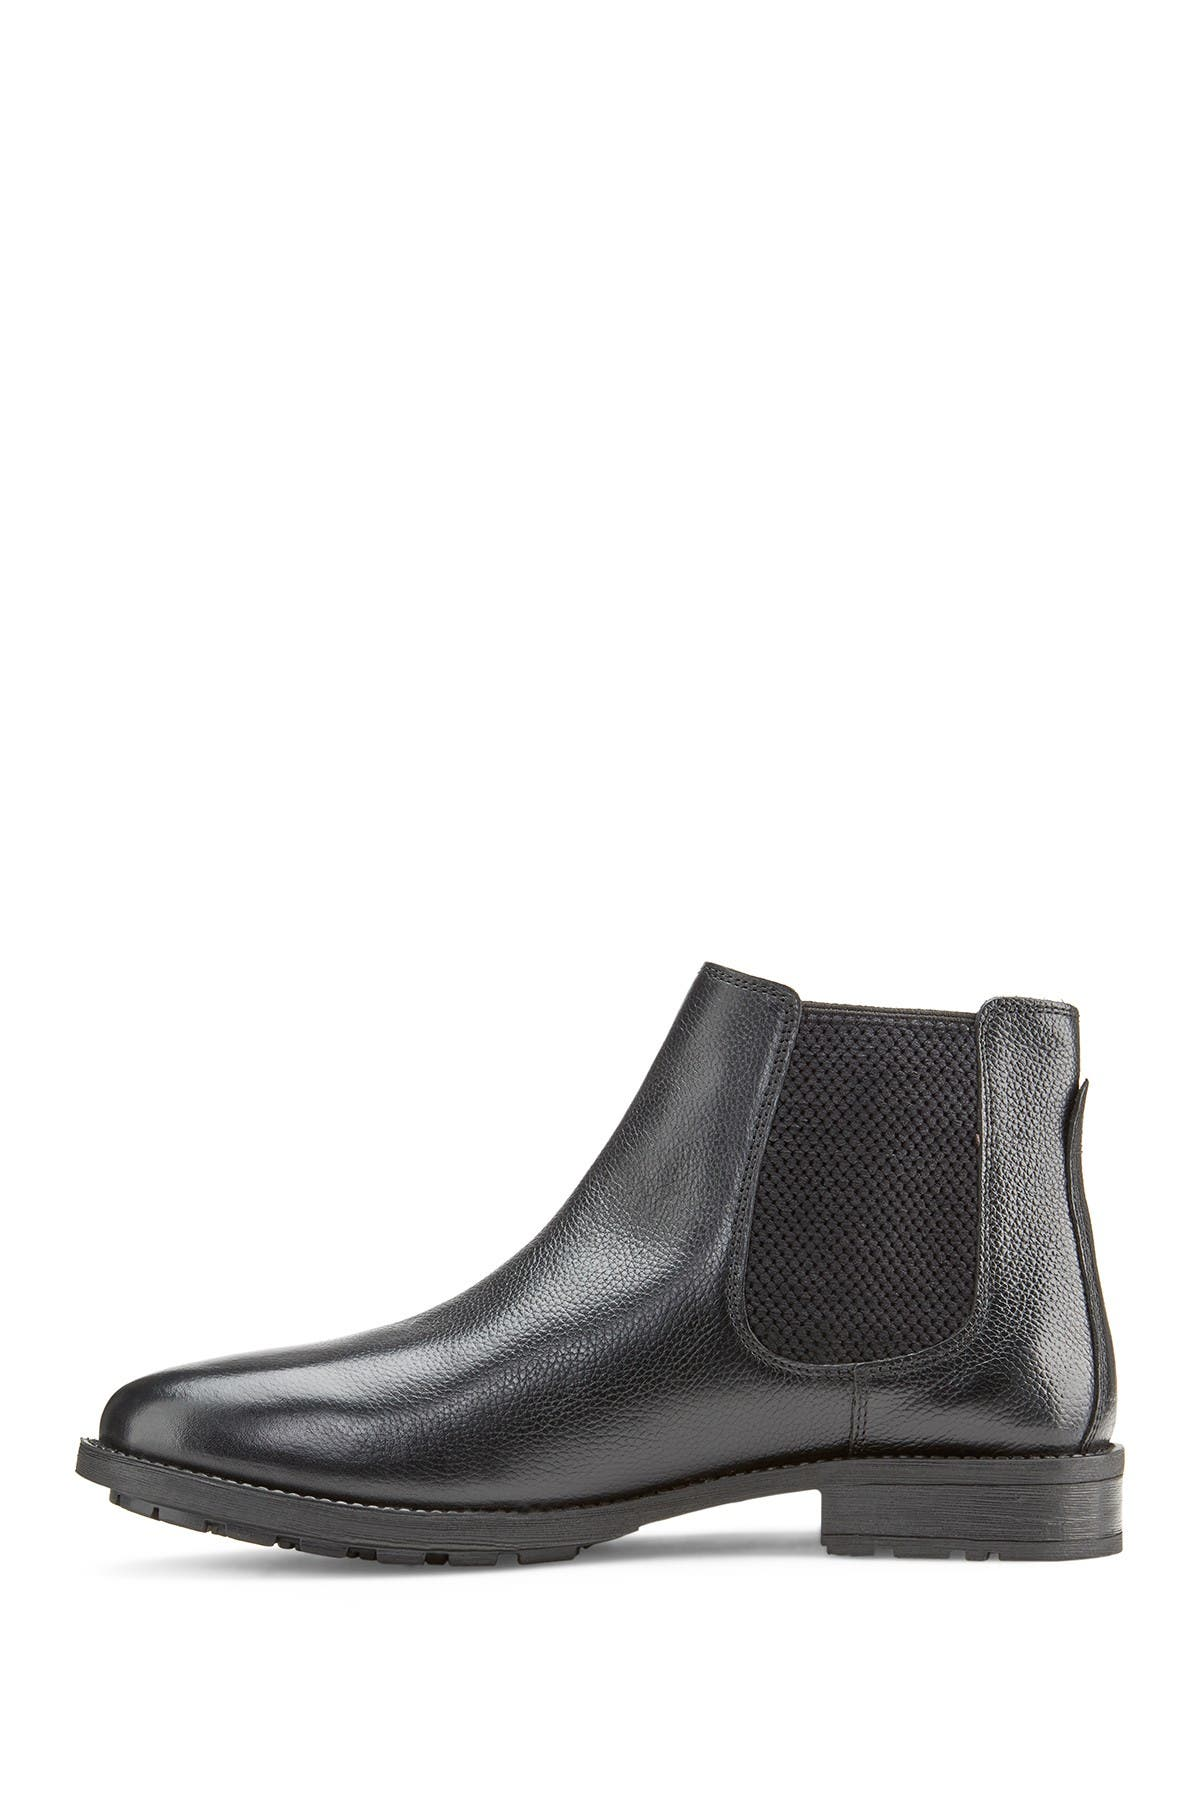 Reserved Footwear   Leather Chelsea